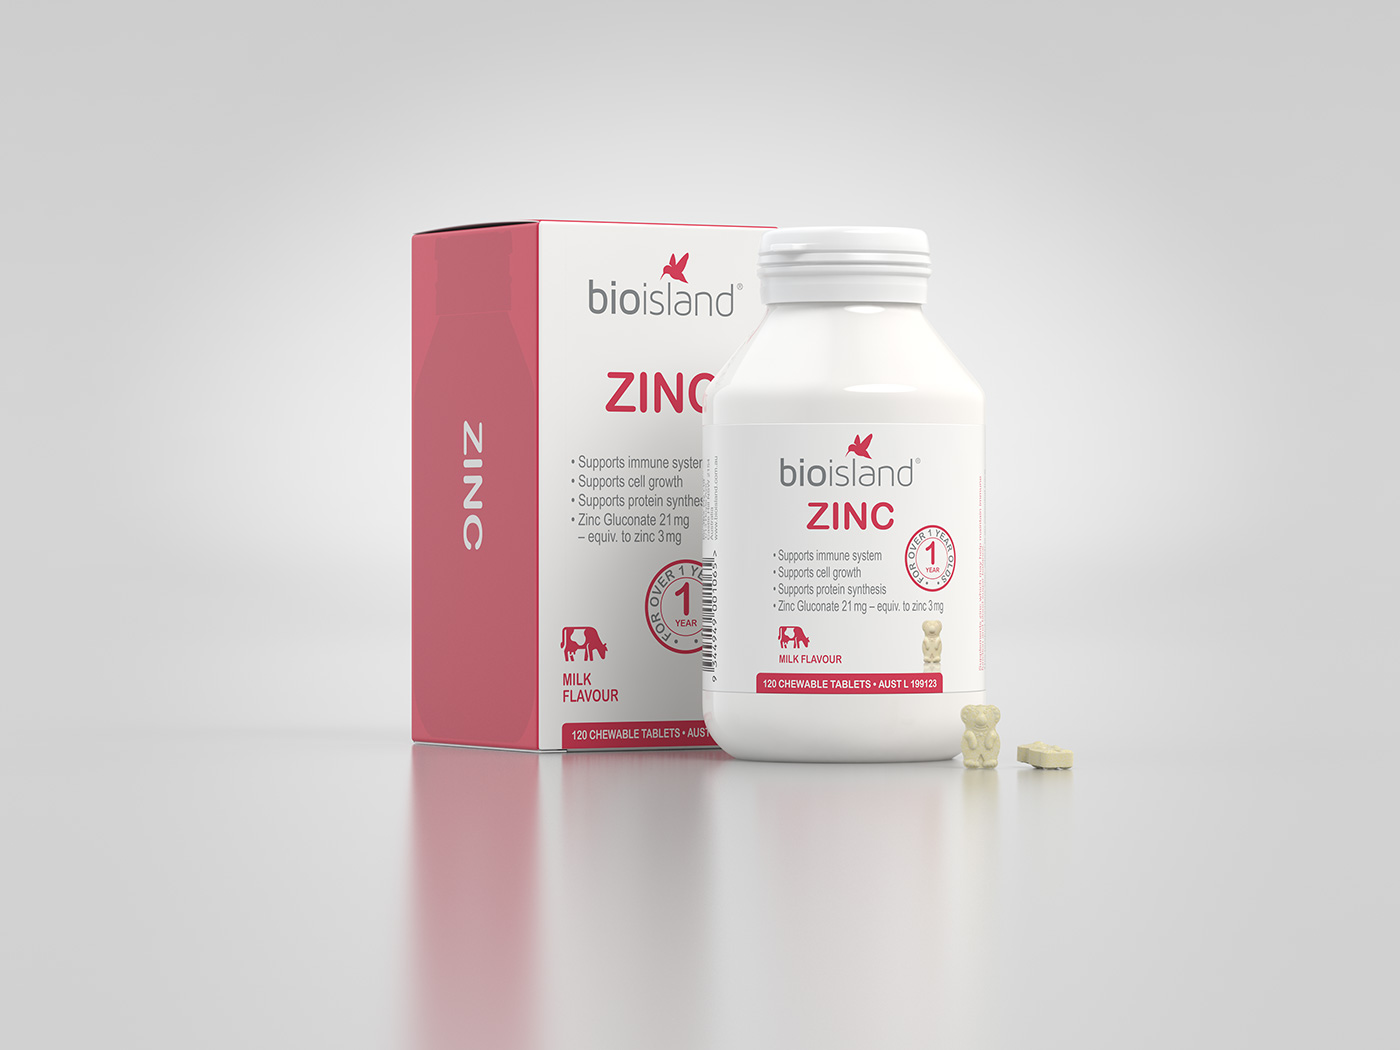 And Zinc get updated as well.